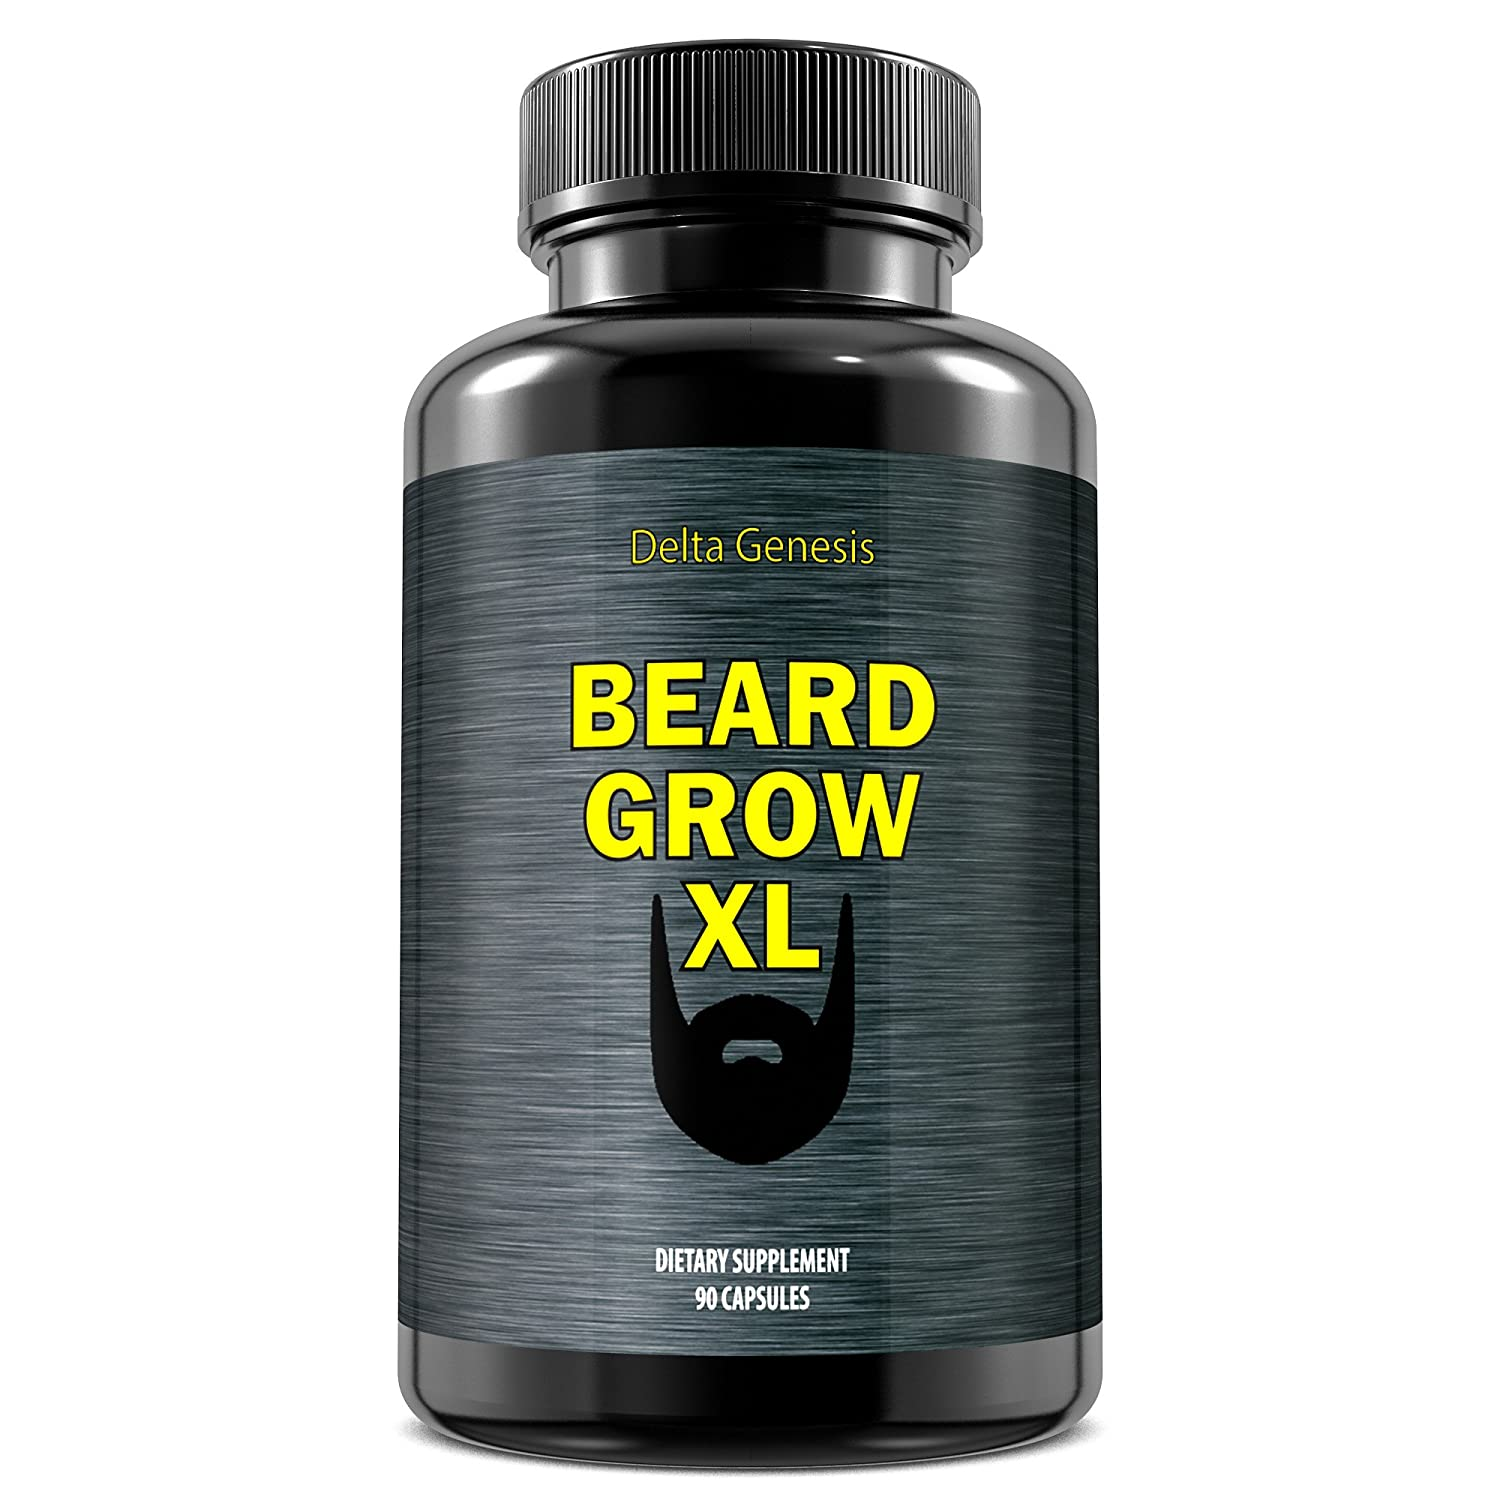 Beard Grow Xl Facial Hair Supplement 1 Mens Up Super Usa Growth Vitamins For Thicker And Fuller Health Personal Care